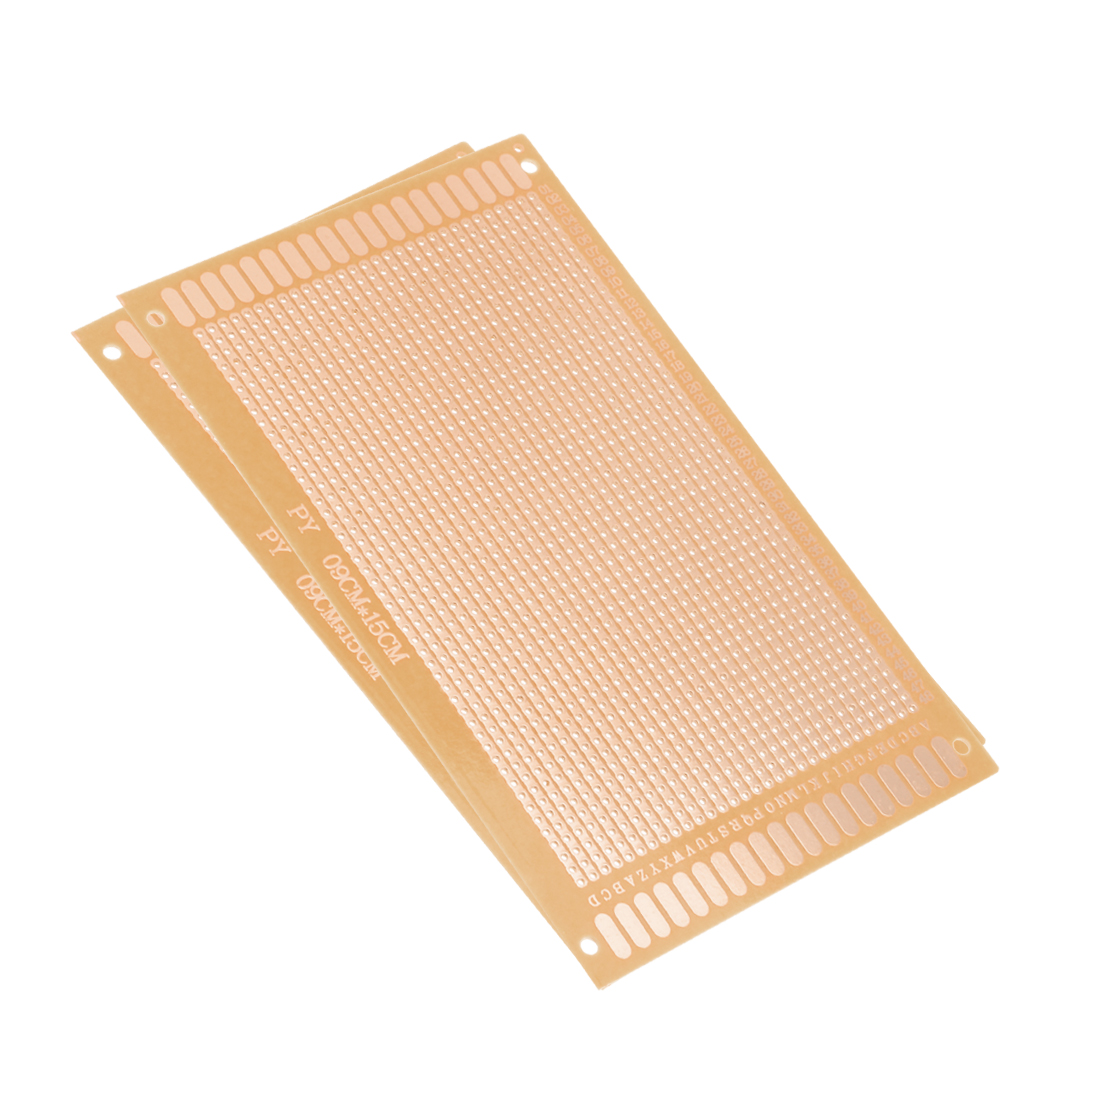 9x15cm Single Sided Universal Paper Printed Circuit Board for DIY Soldering 2pcs